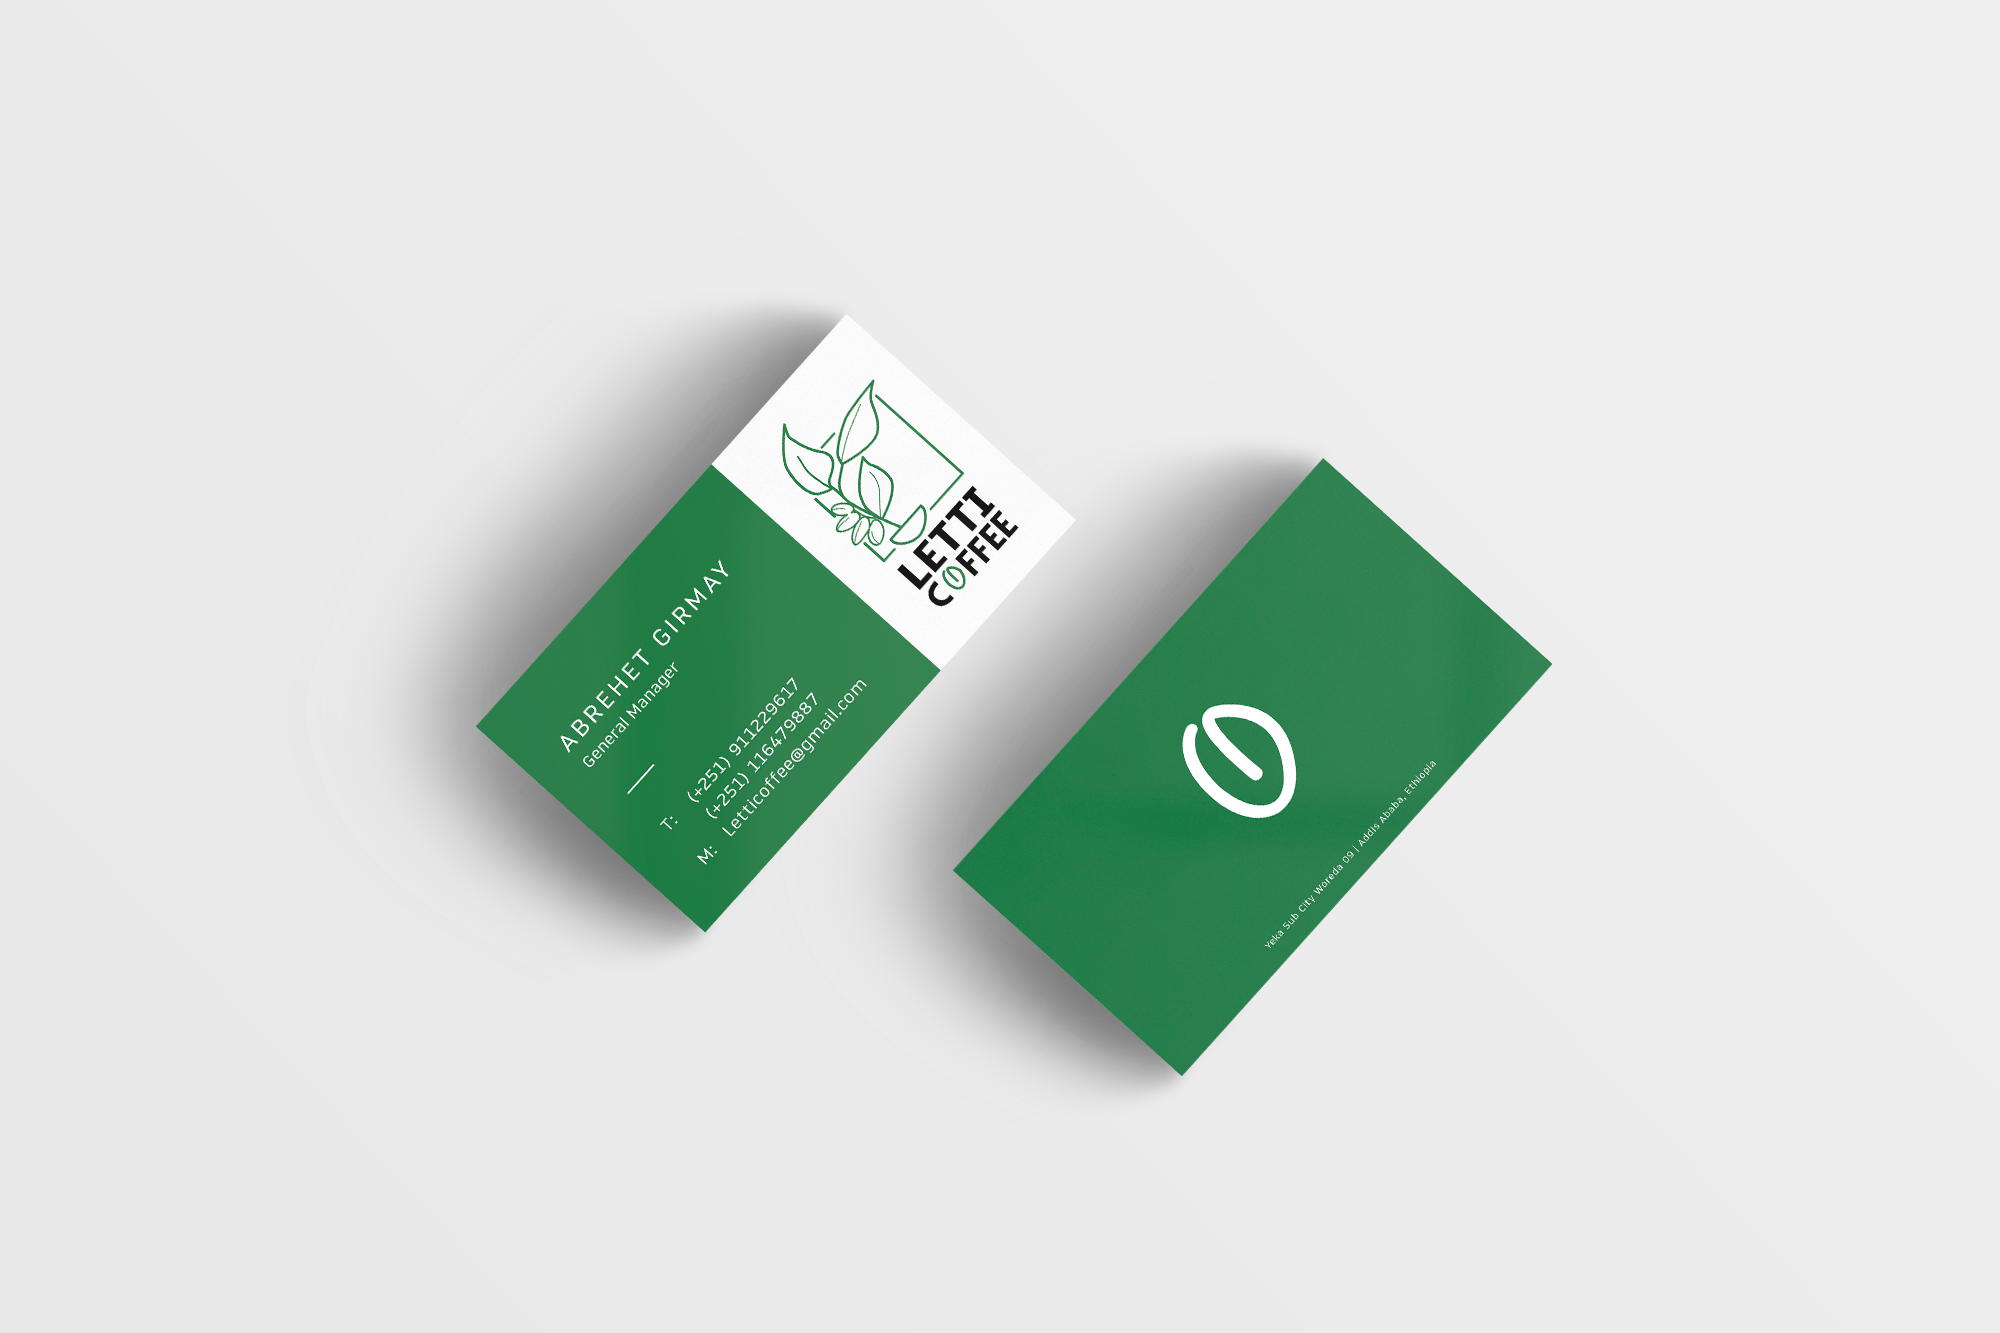 Letti Coffee Business Cards Mockup.png